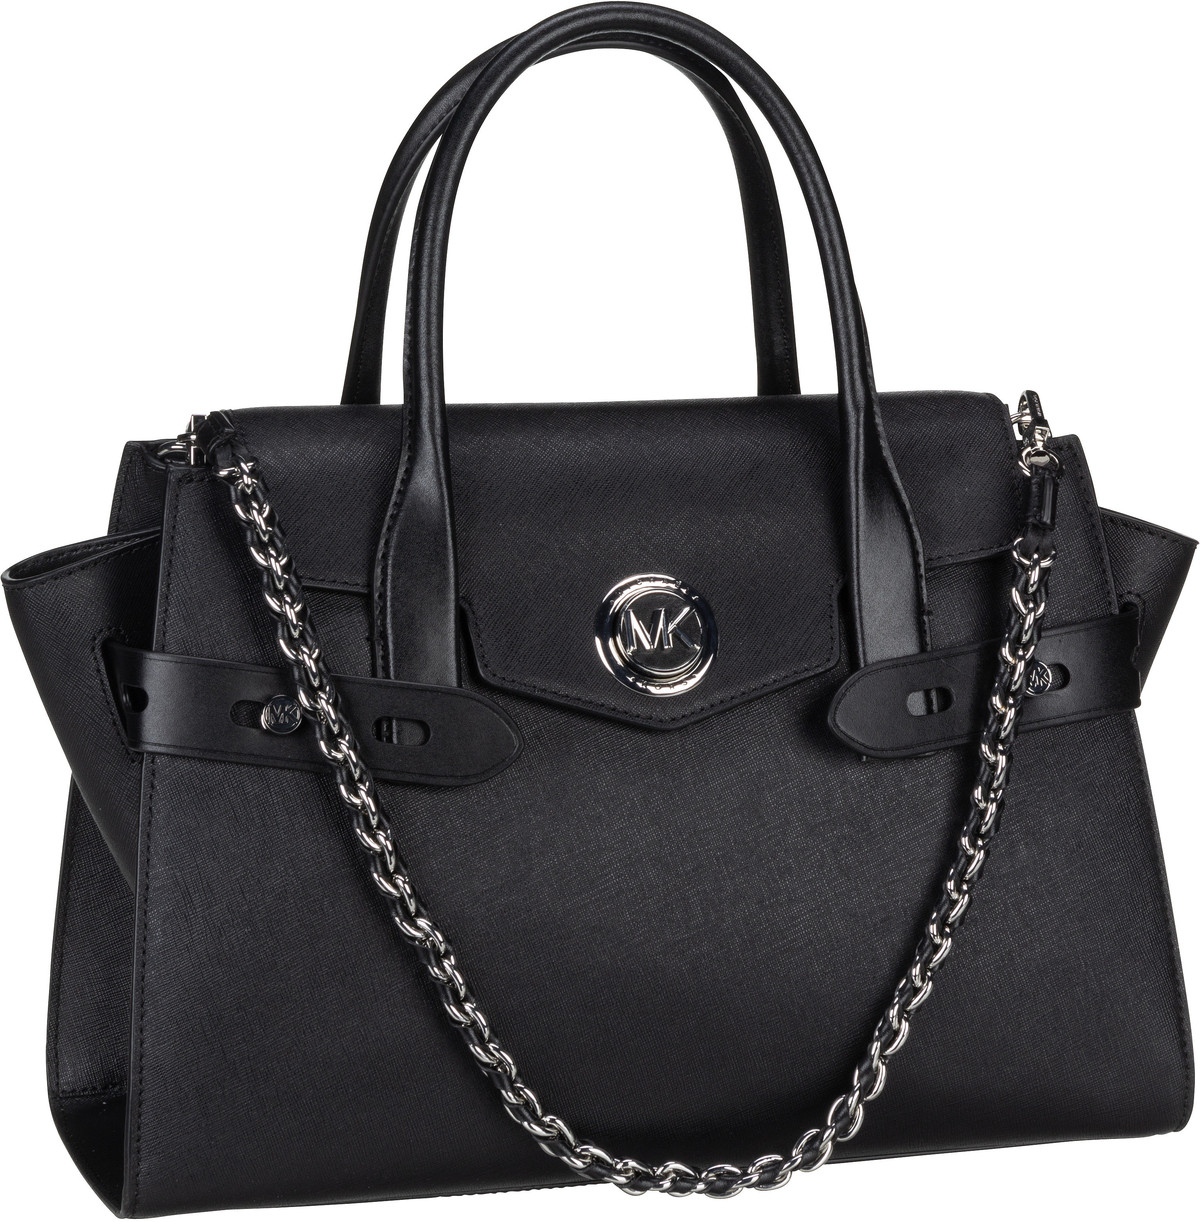 Michael Kors Handtasche Carmen Large Flap Satchel Black/Rhodium